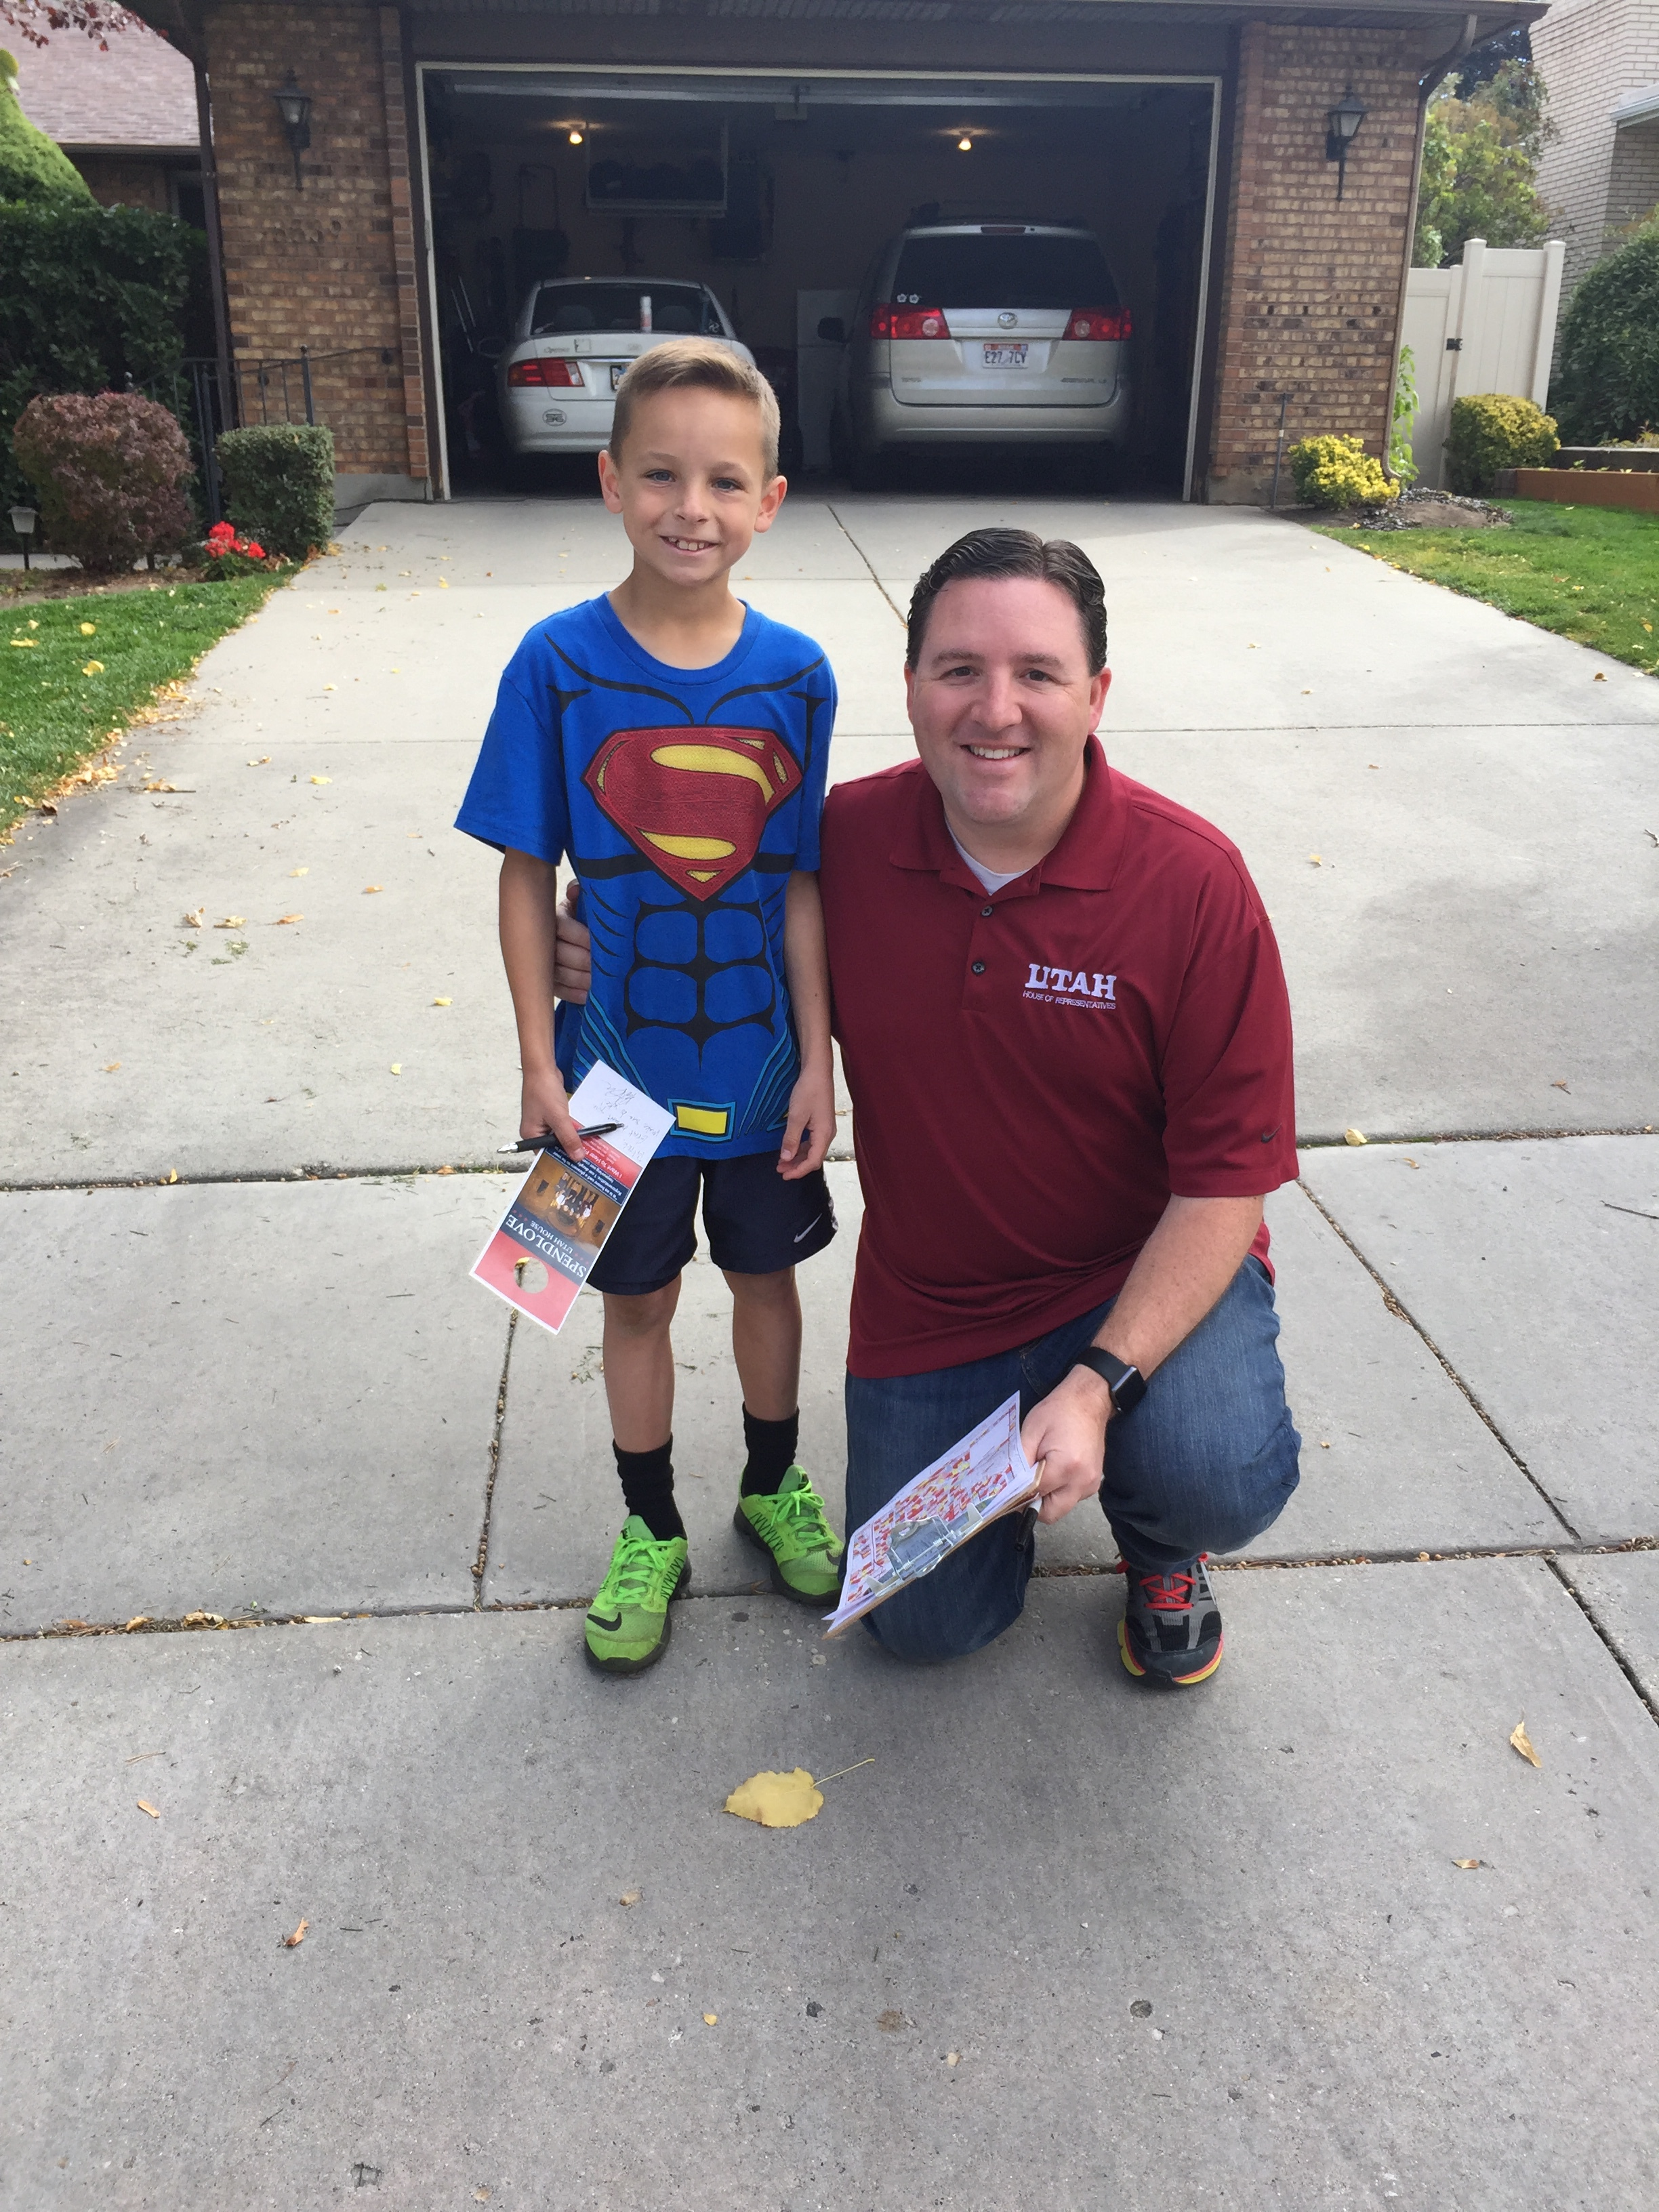 161015 - Canvassing with Young Constituent.JPG